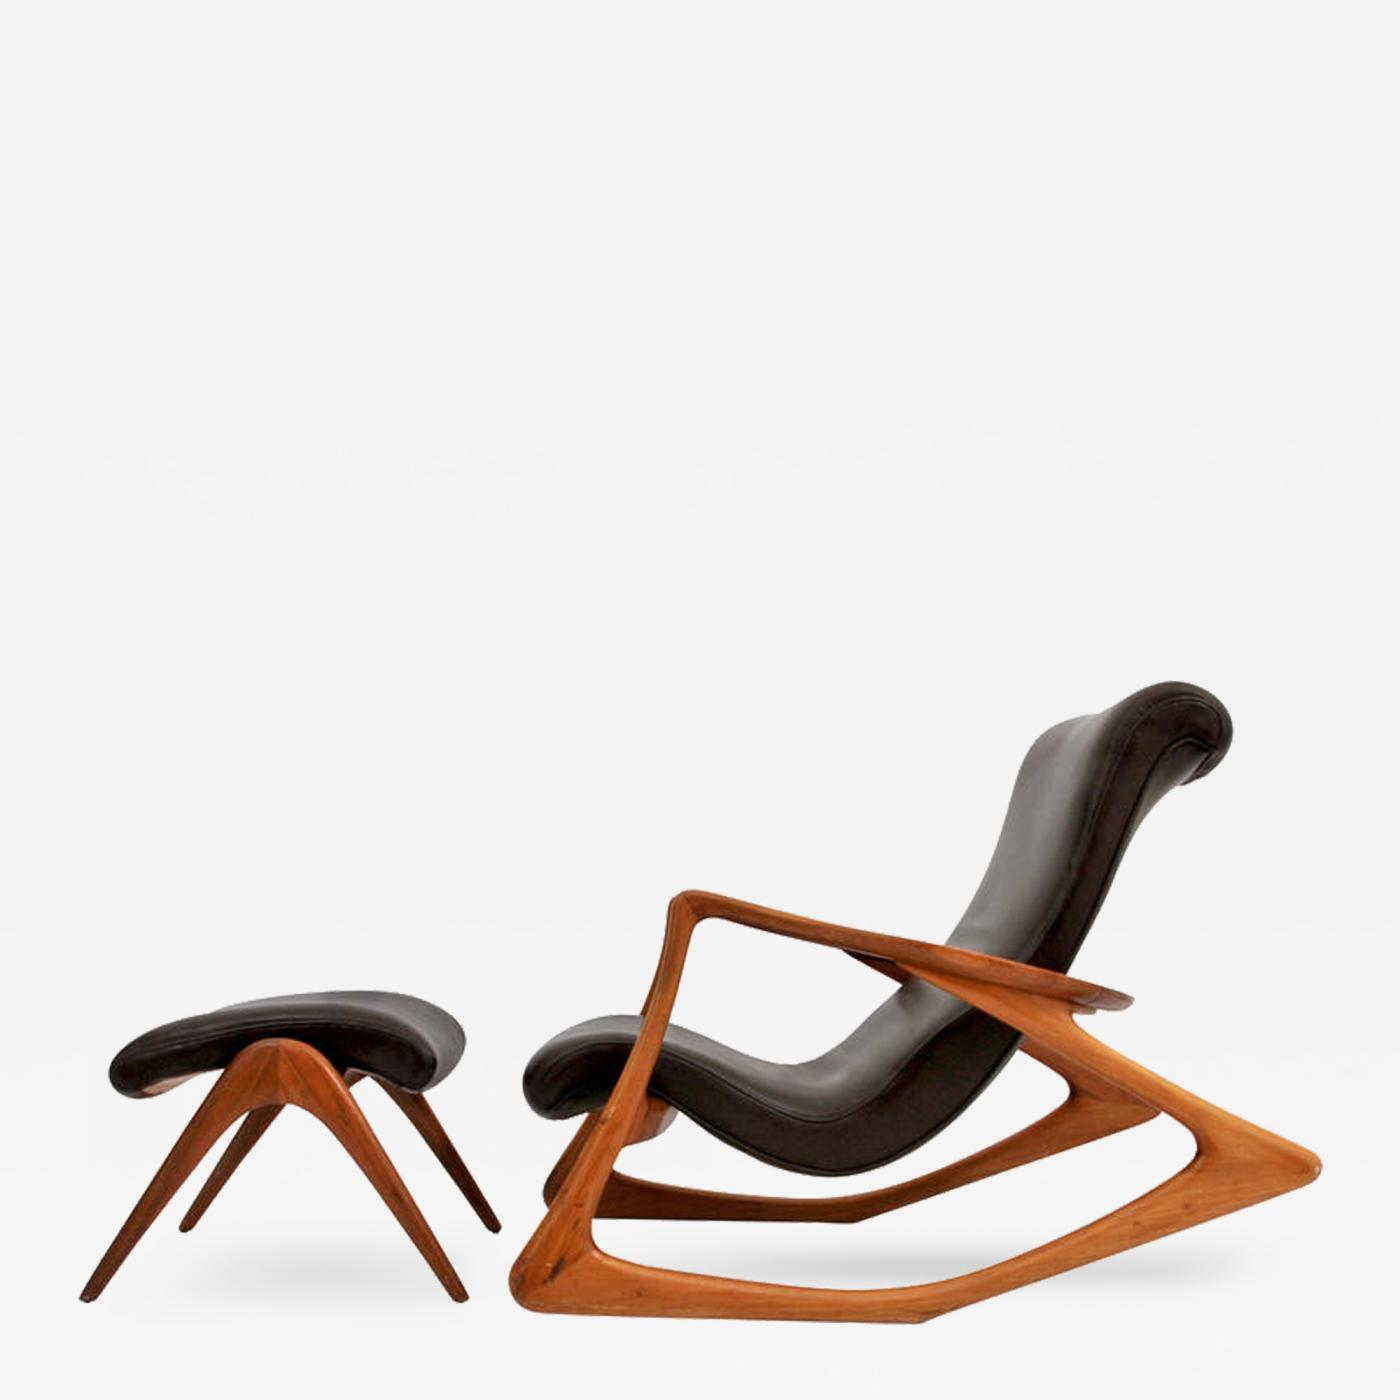 Vladimir Kagan Vladimir Kagan Two Position Contour Rocking Chair